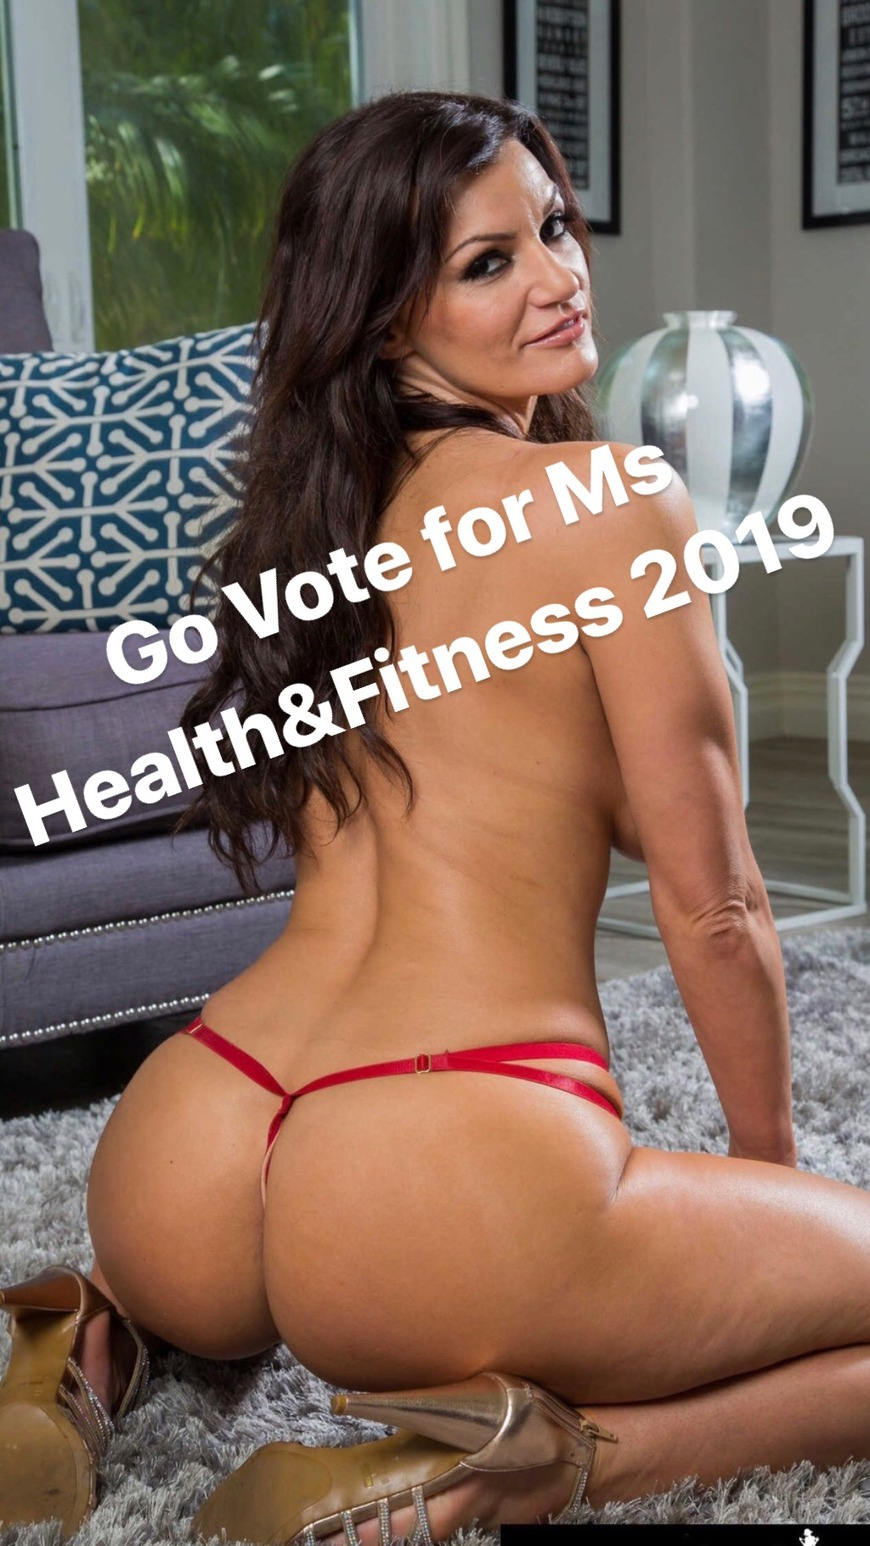 GO VOTE, SHOW YOUR SUPPORT!! - post image - 2